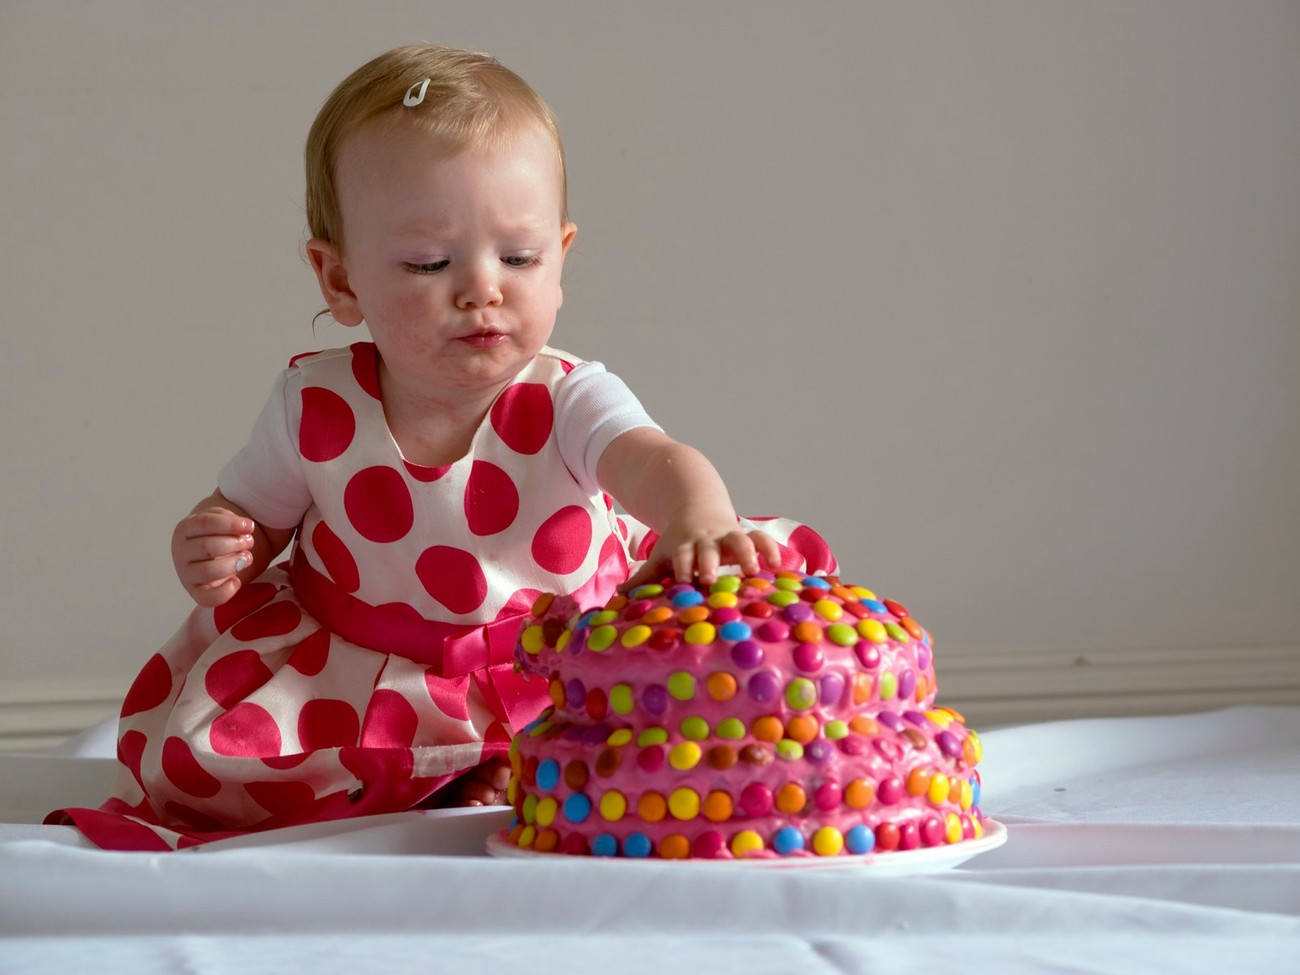 Lexi didn't want to smash the cake up like her mother intended her to do, instead she just picked off the bits off interest, which I thought made better photos anyway